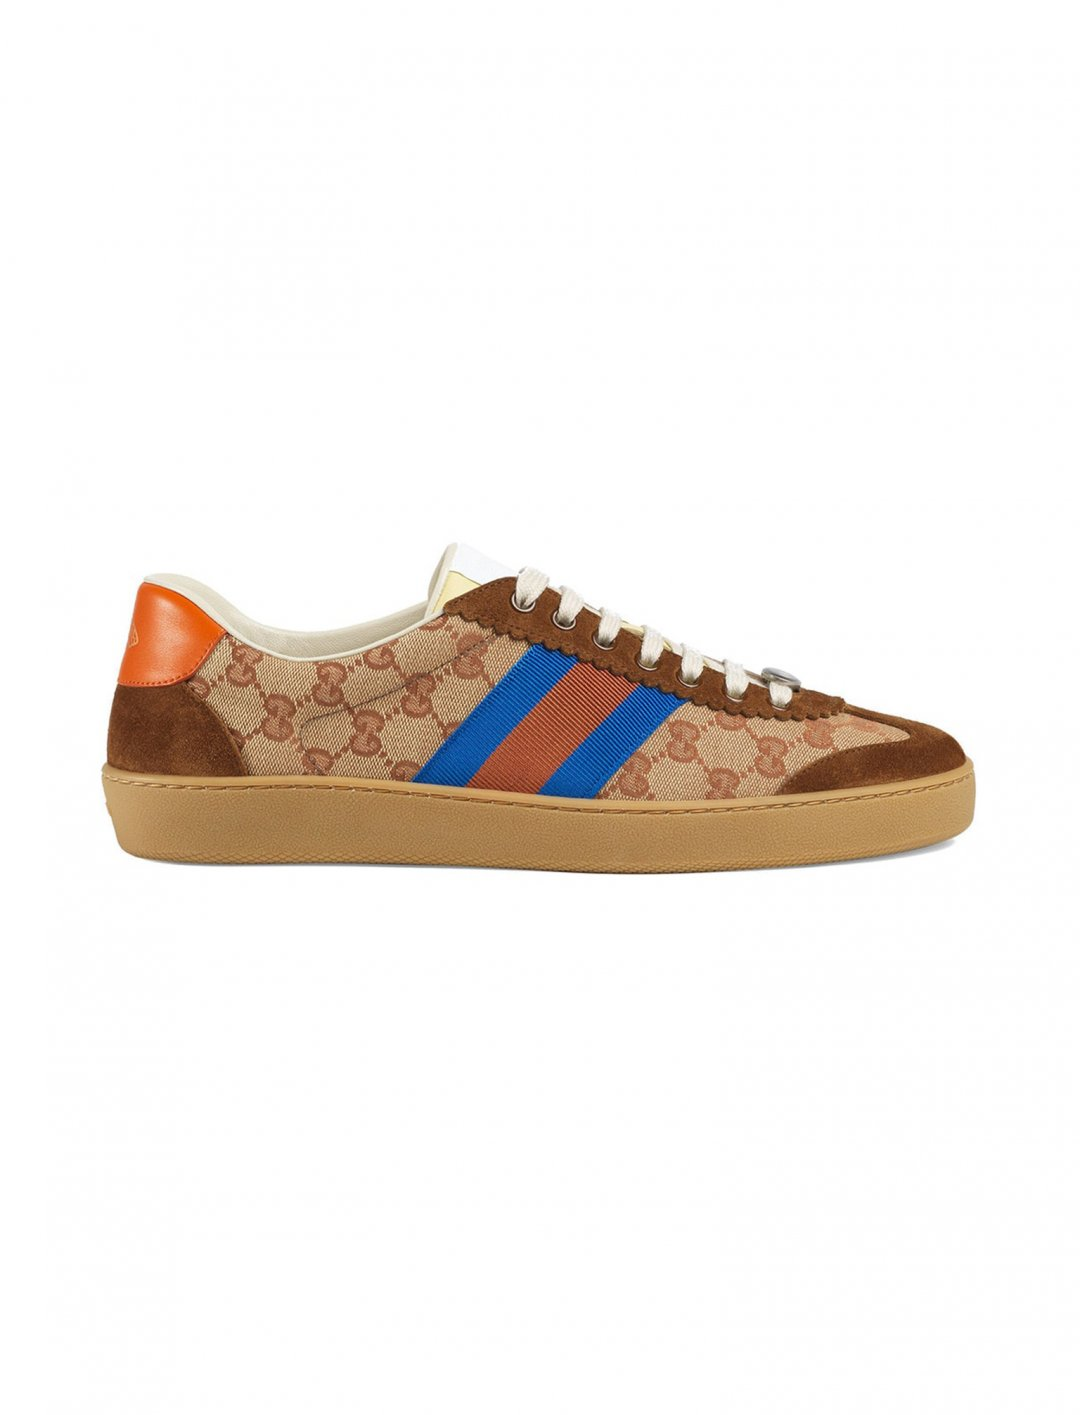 "Tiggs Da Author's Sneaker {""id"":12,""product_section_id"":1,""name"":""Shoes"",""order"":12} Gucci"